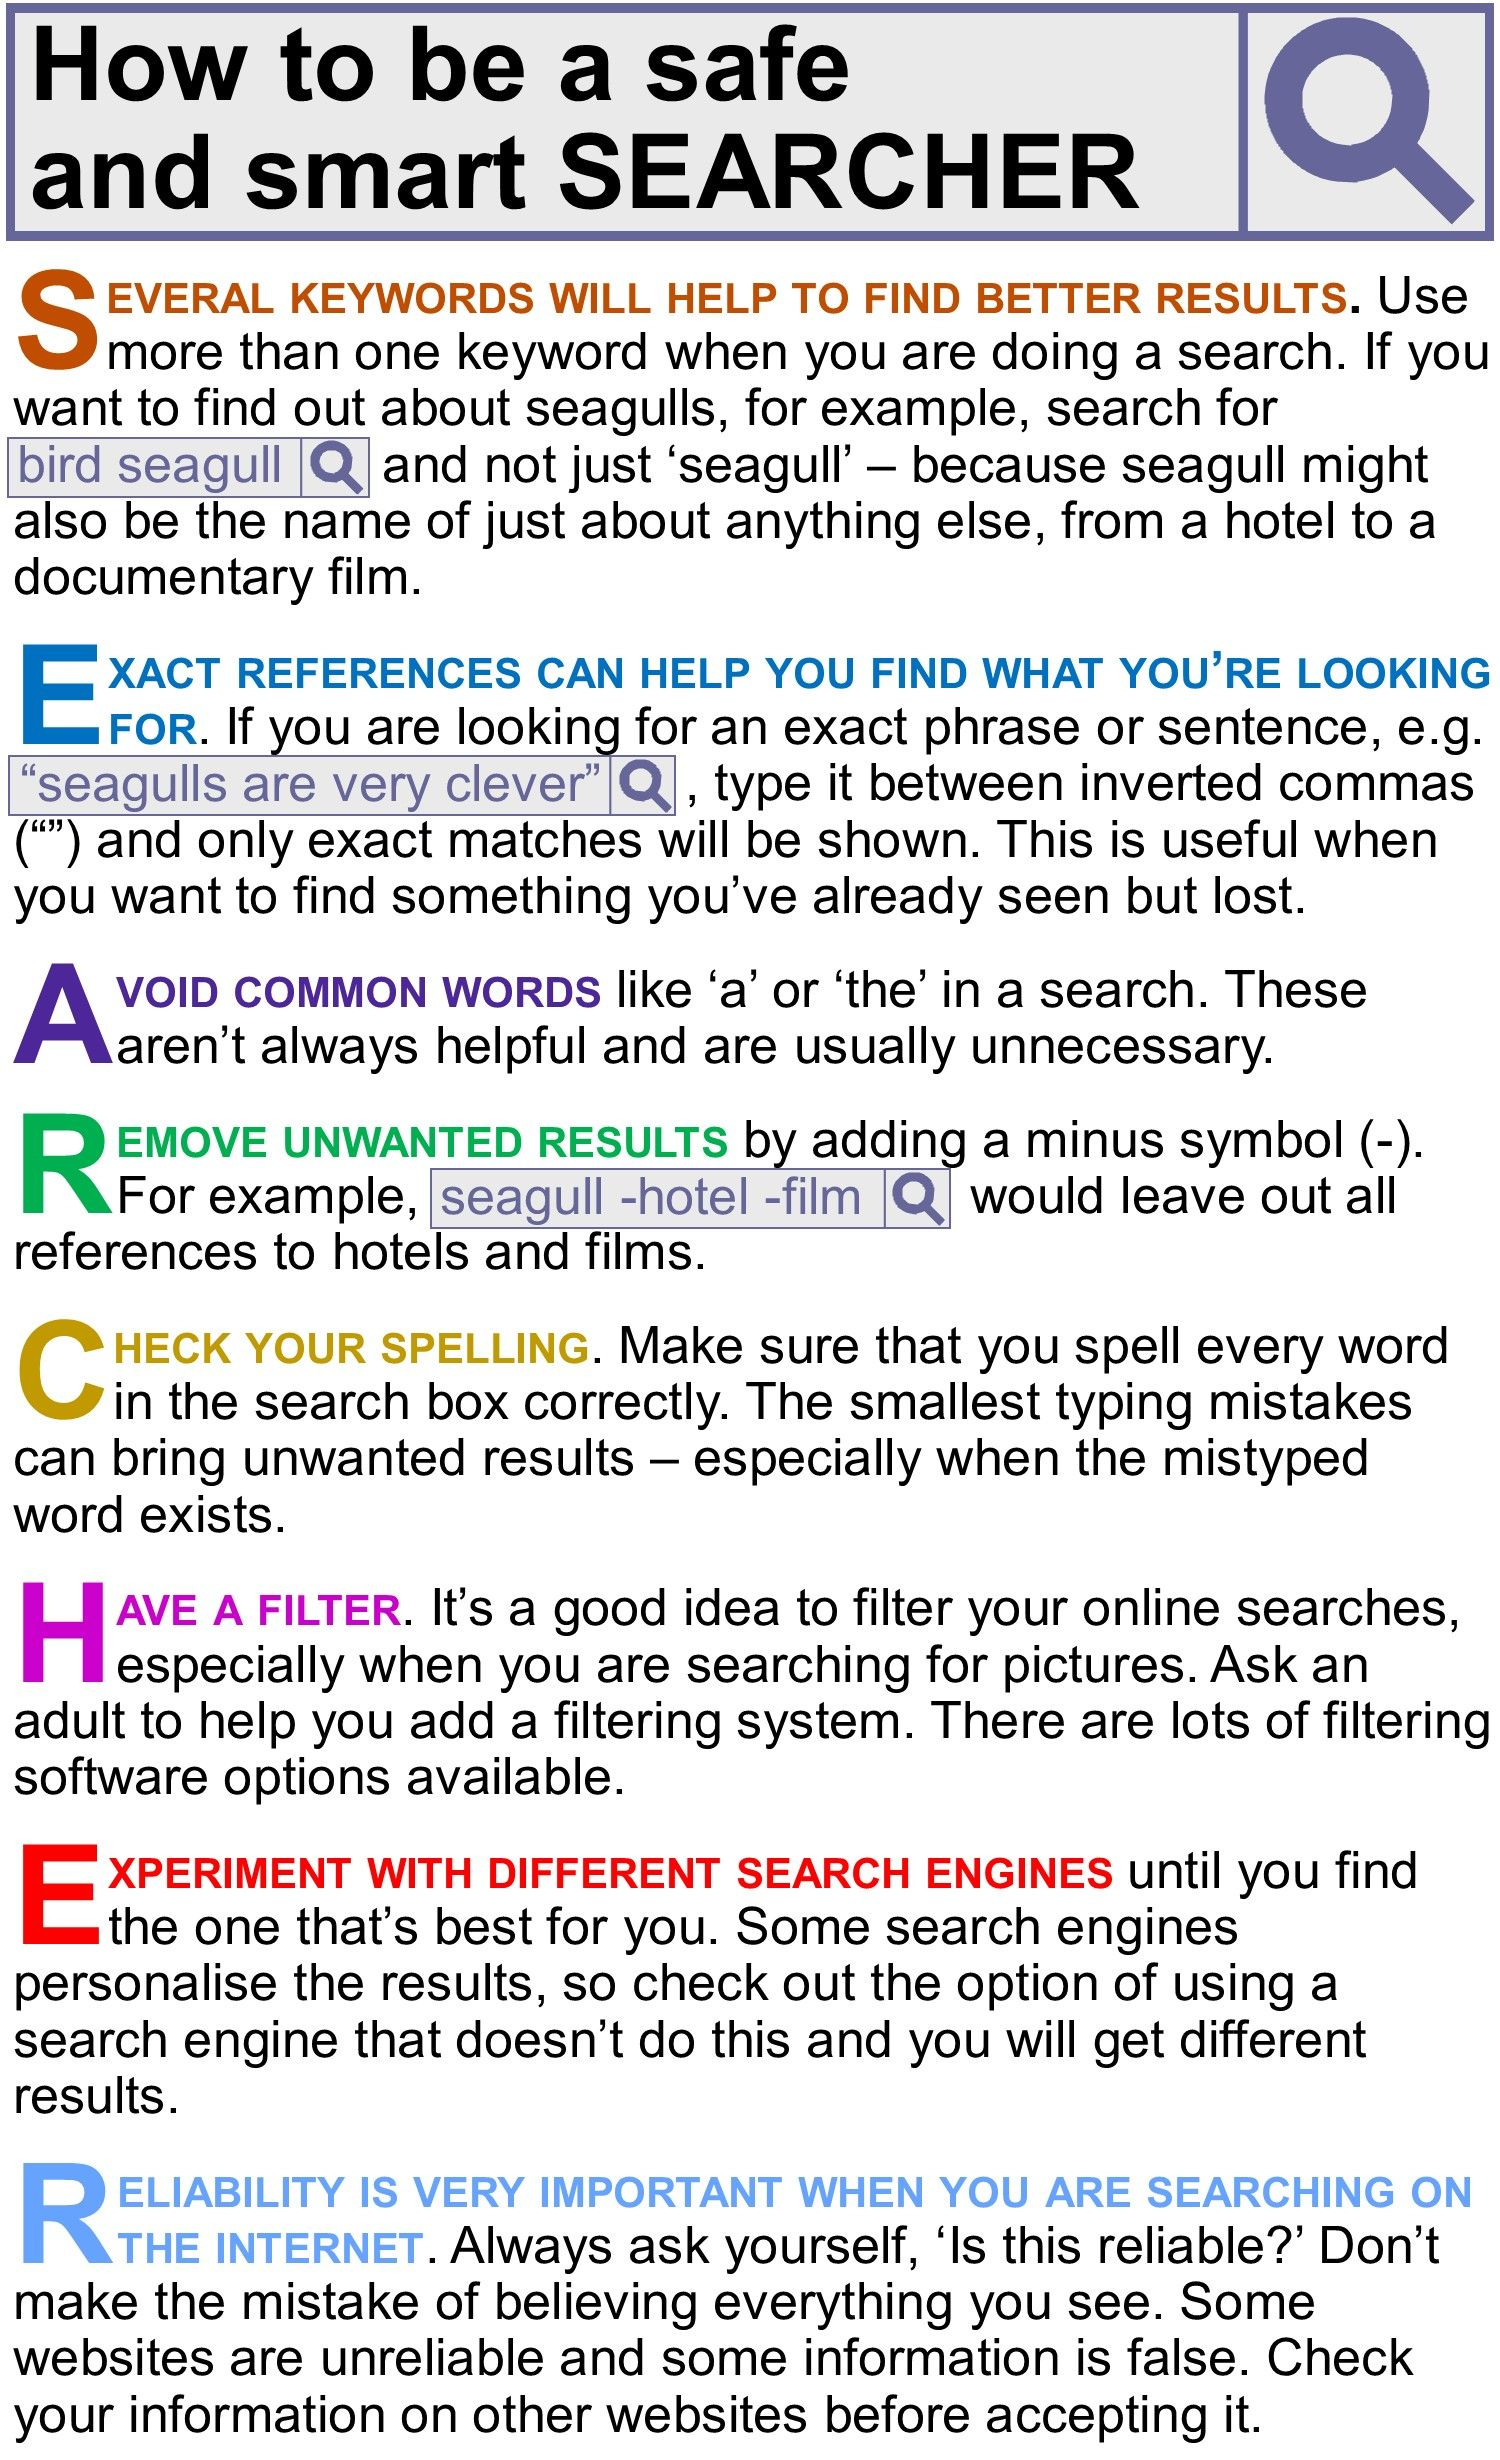 How To Be A Safe And Smart Searcher